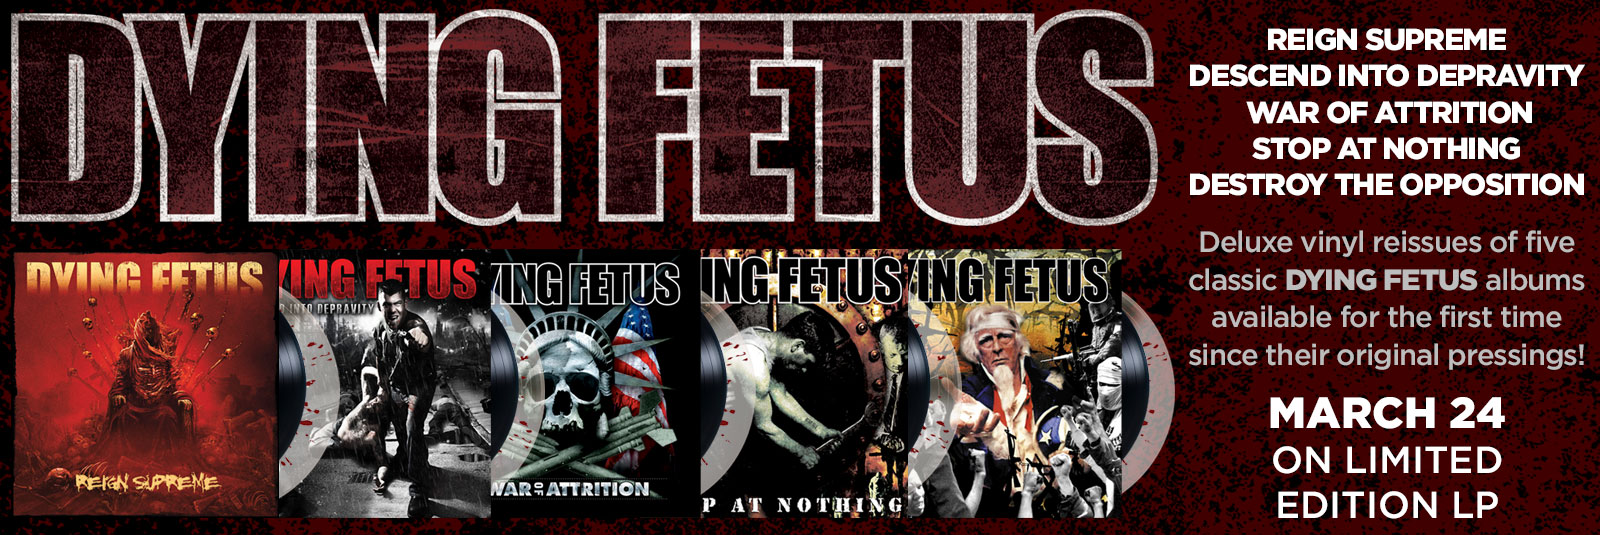 dying-fetus-reissue-reign-supreme-descend-into-depravity-war-of-attrition-LP-stop-at-nothing-12inch-destroy-the-opposition-LP